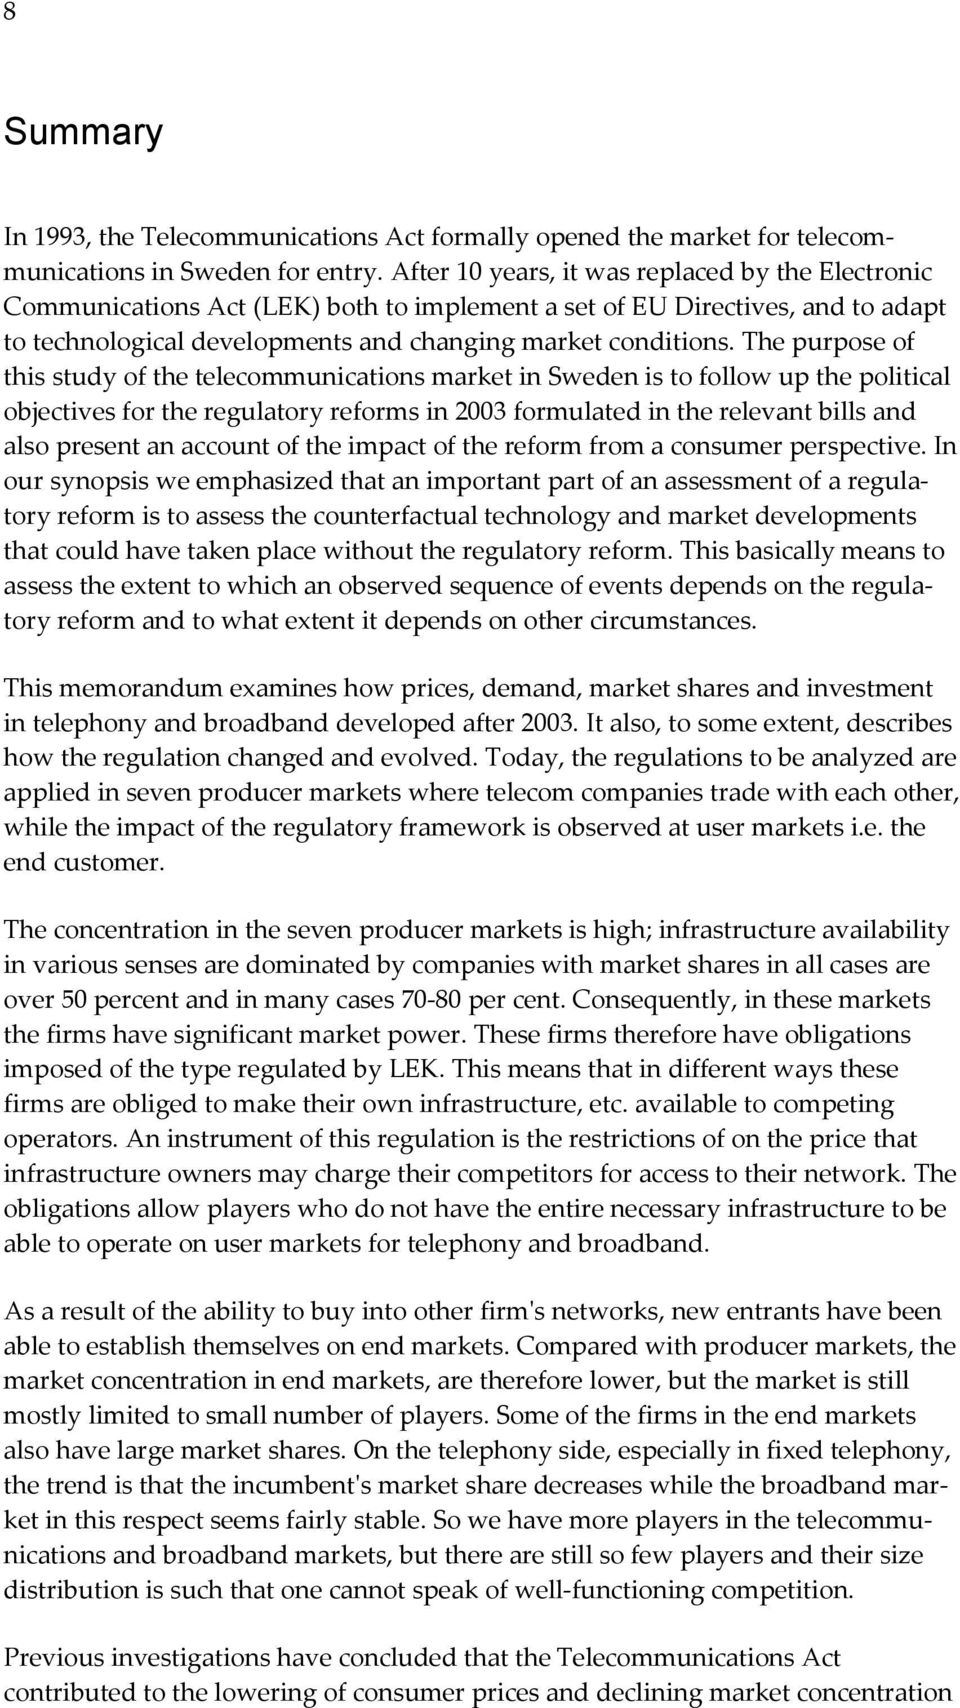 The purpose of this study of the telecommunications market in Sweden is to follow up the political objectives for the regulatory reforms in 2003 formulated in the relevant bills and also present an